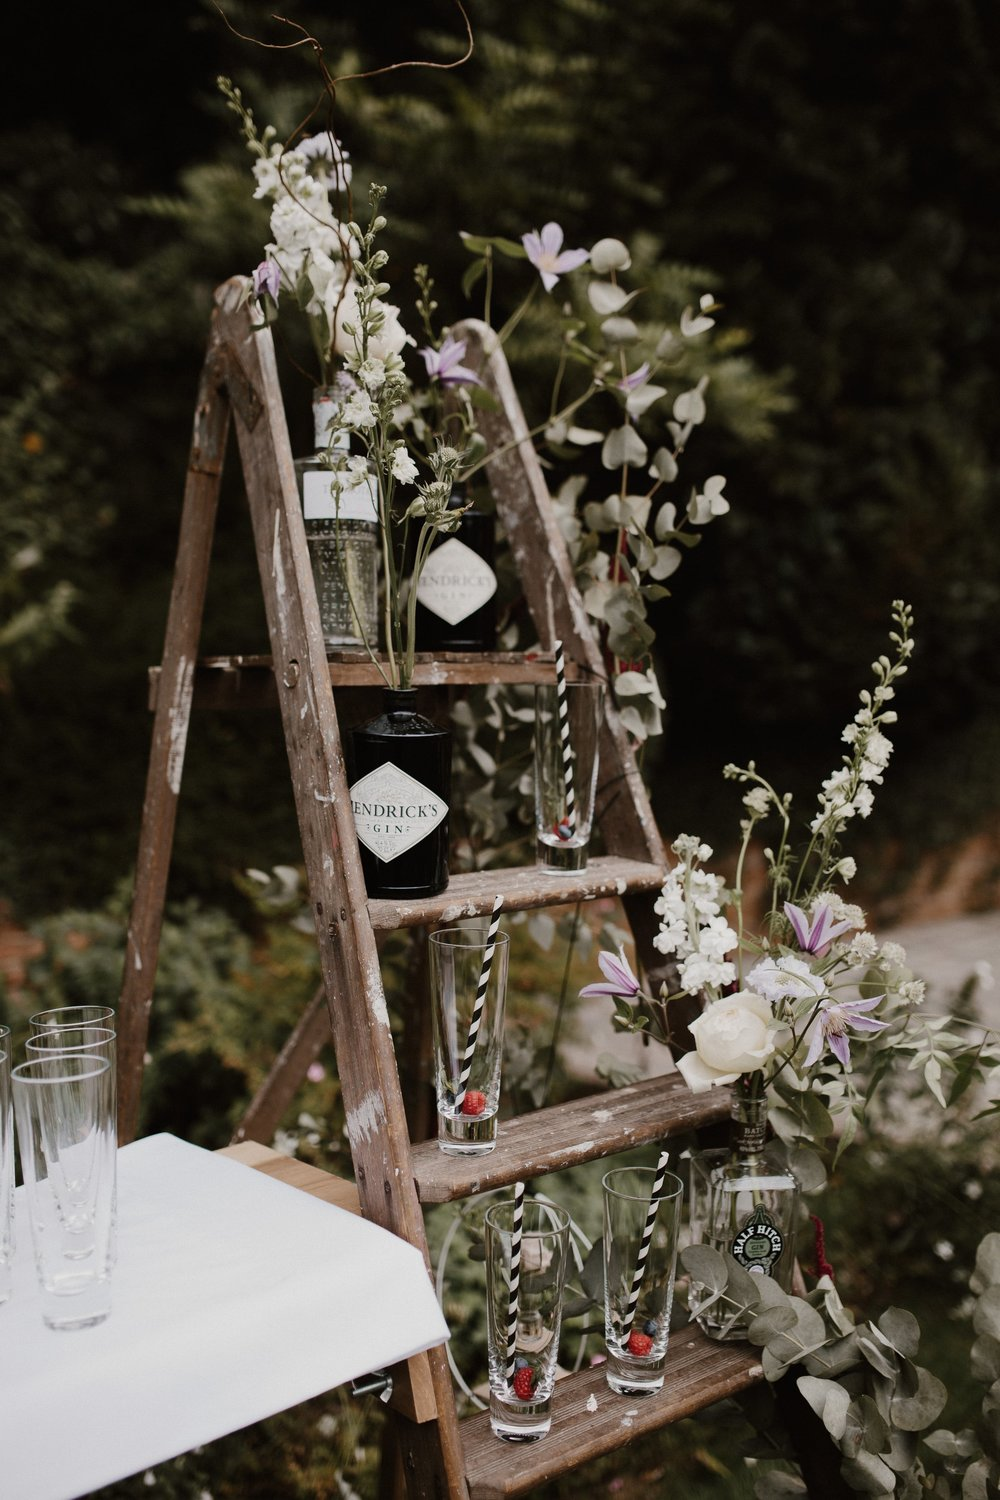 Nat and Tom - 01 - Venue and Details - Sara Lincoln Photography-21-min.jpg